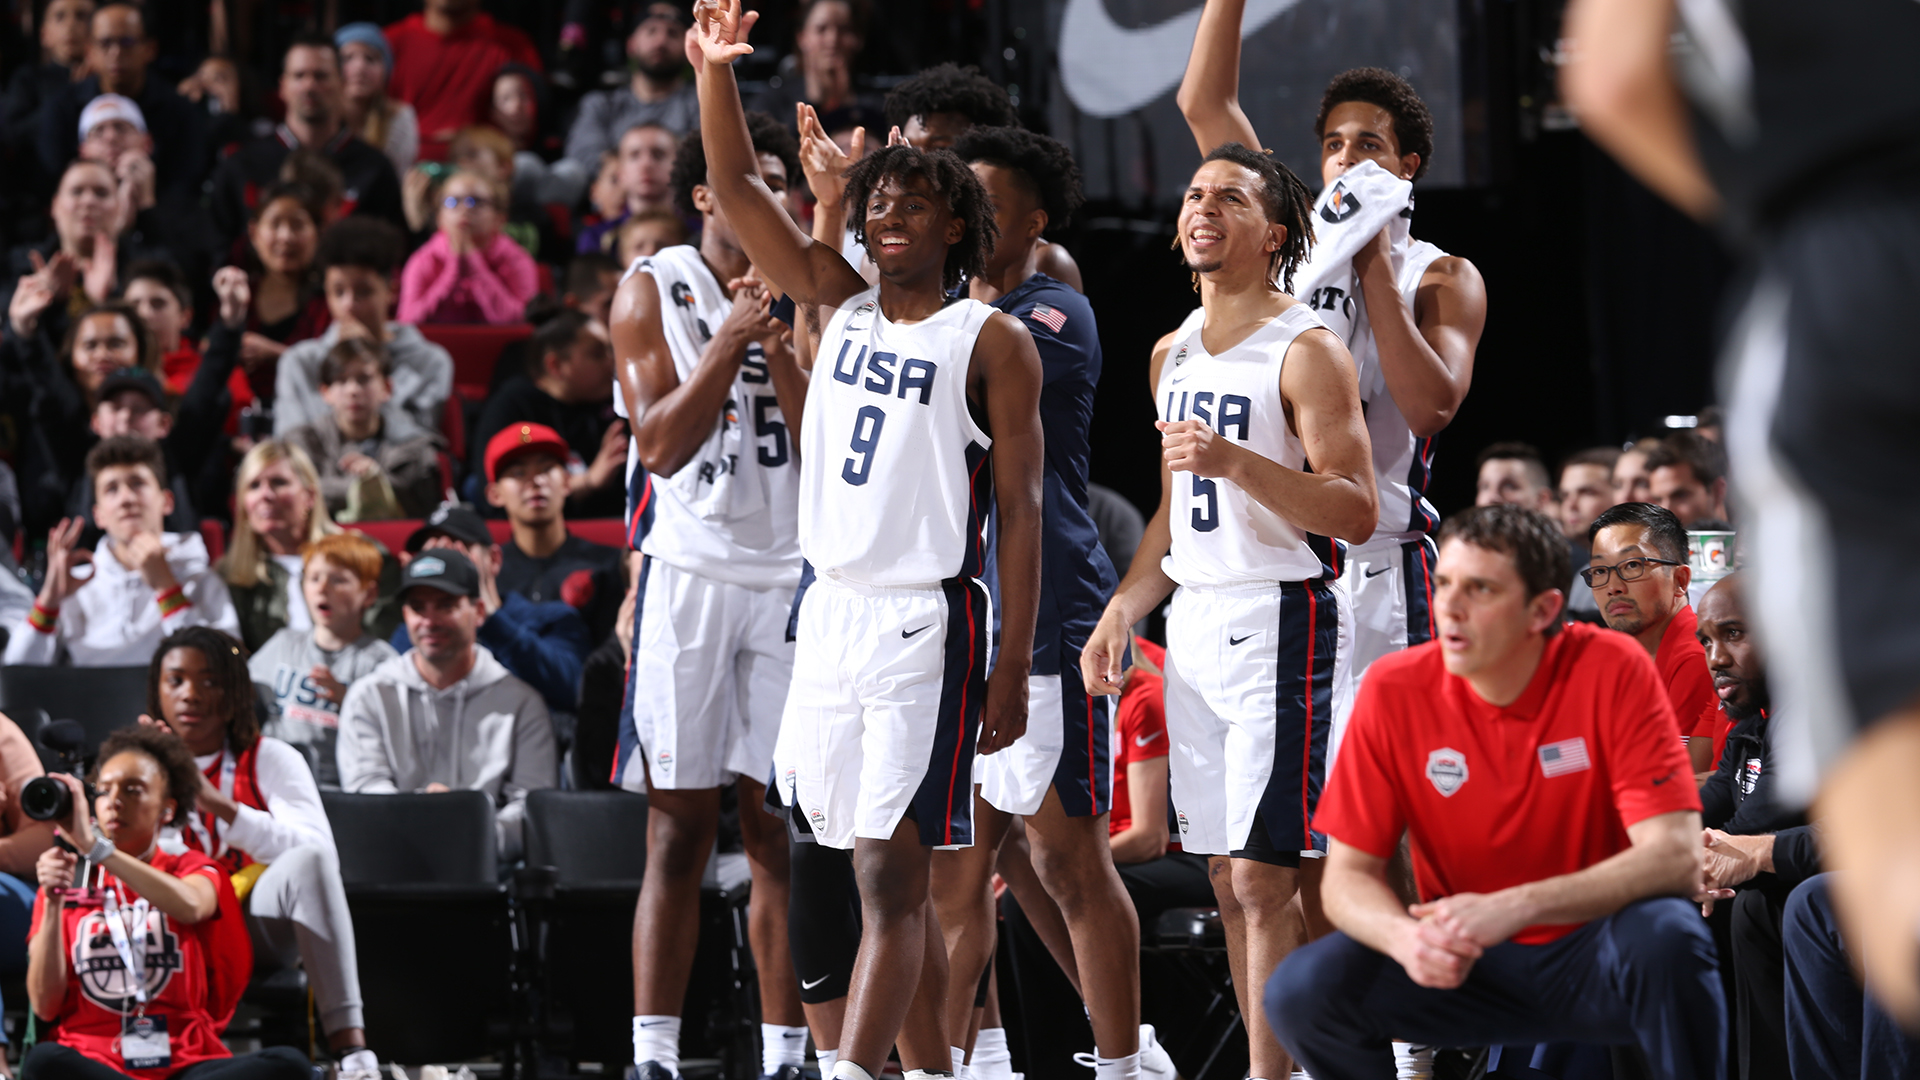 2019 USA Nike Hoop Summit Team bench